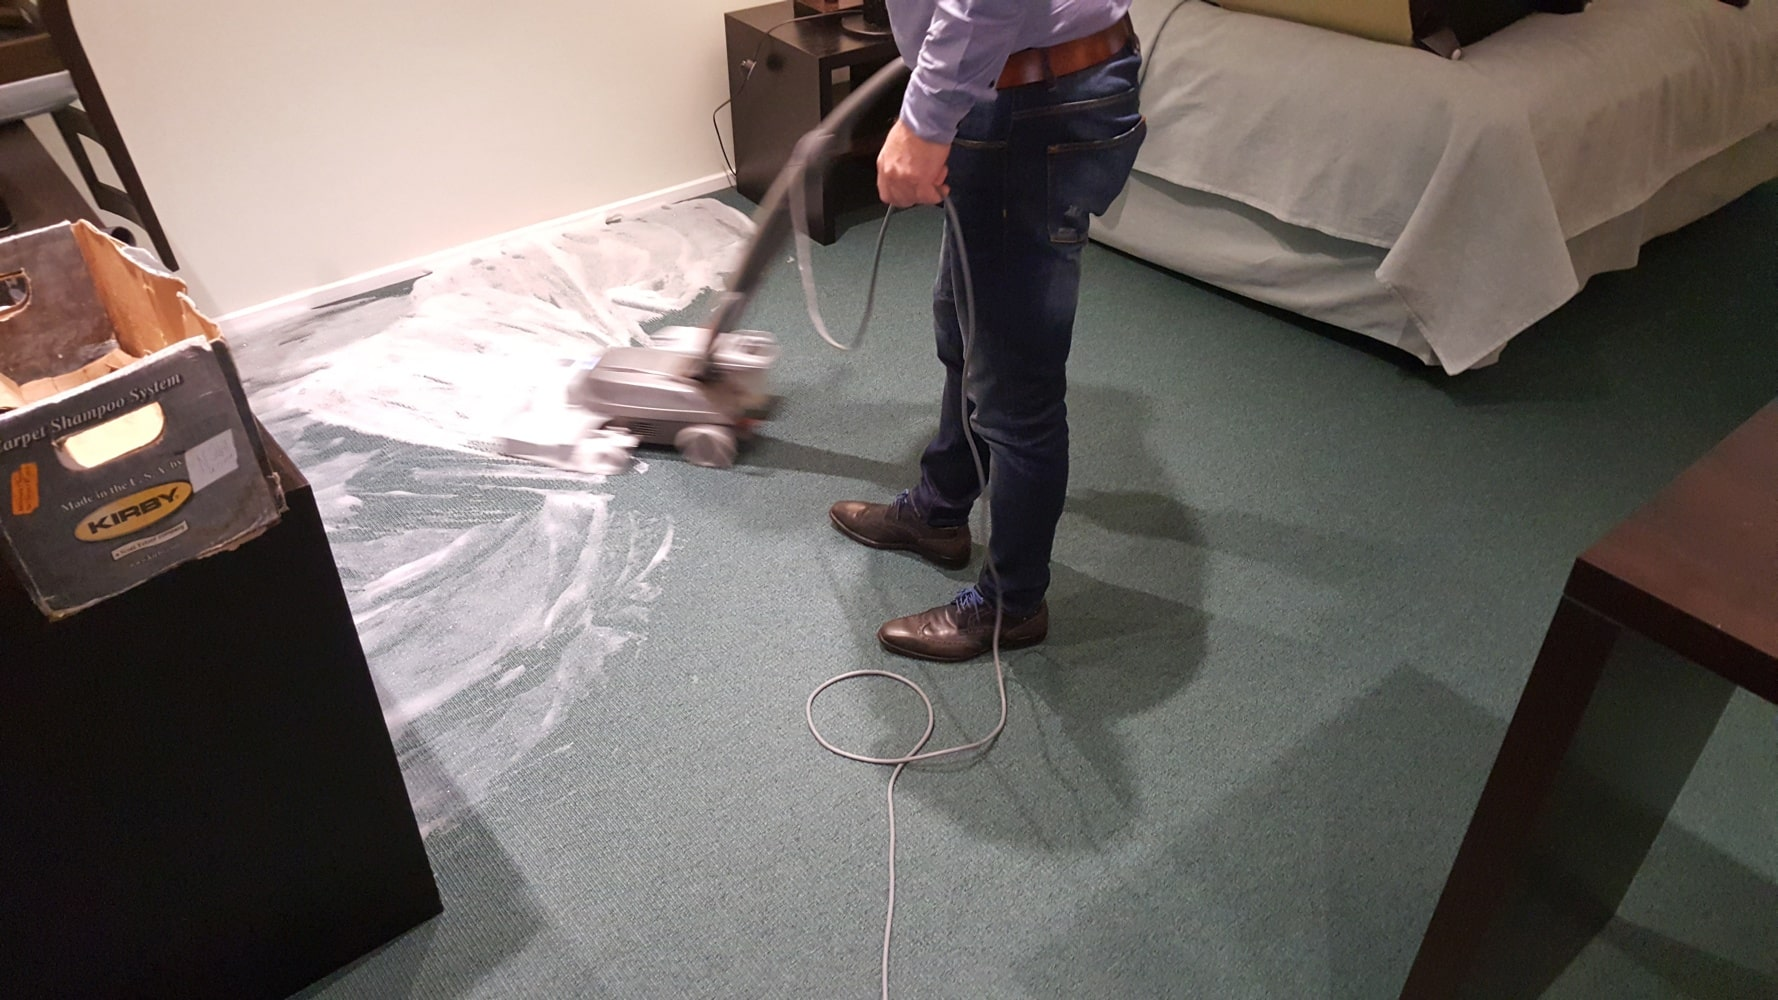 Berber Teppich Reinigen Teppich Reinigung Berlin Free Best Carpet Cleaning In